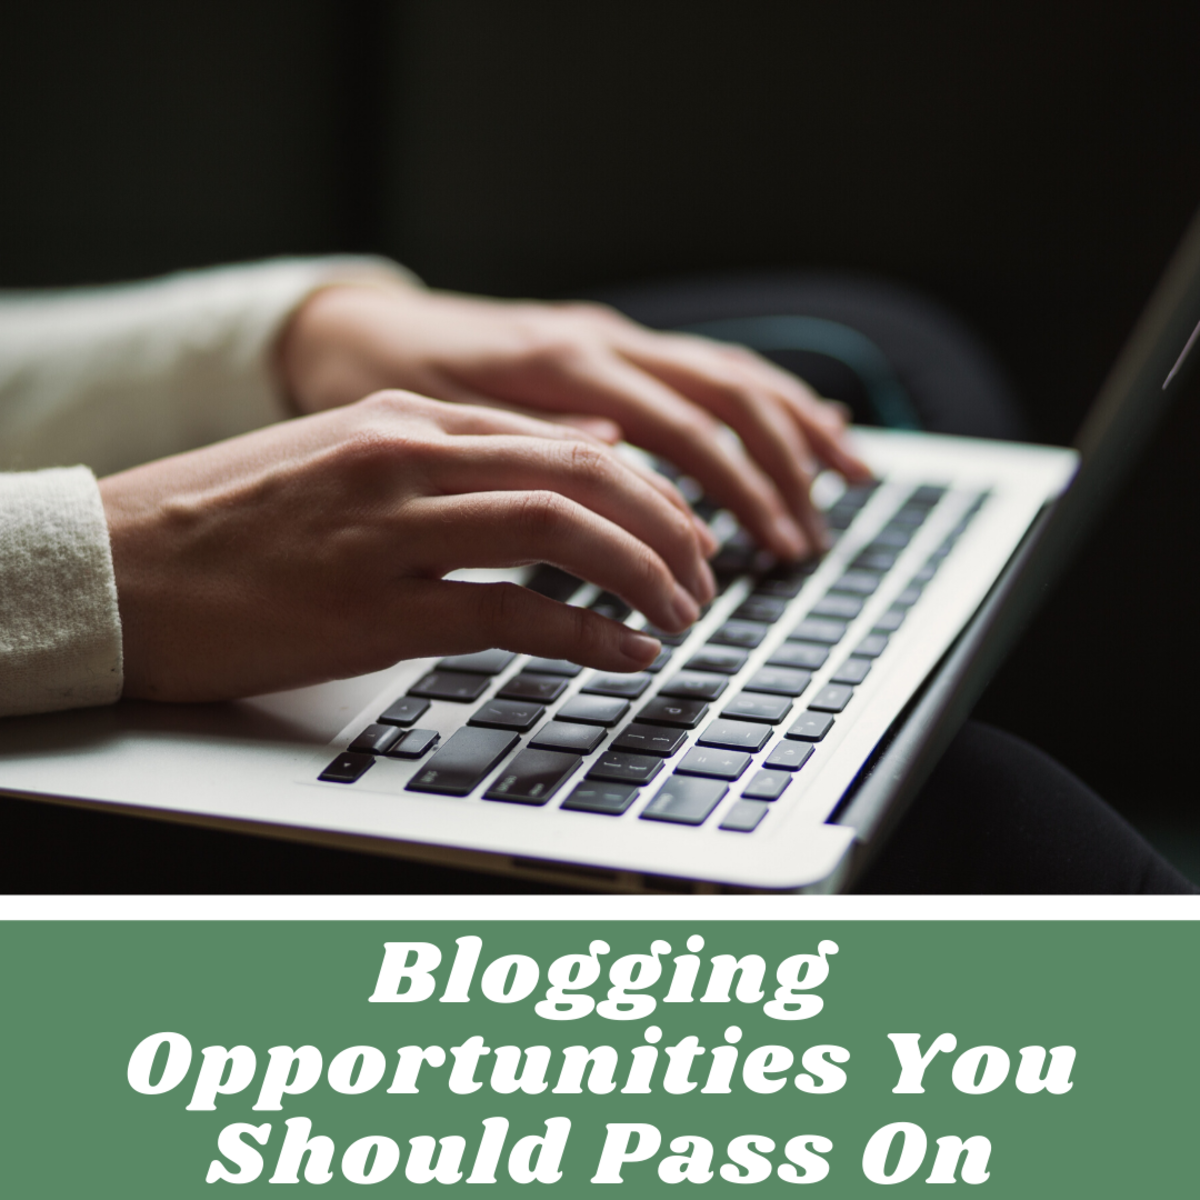 If you see these blog opportunities online, don't take the bait.